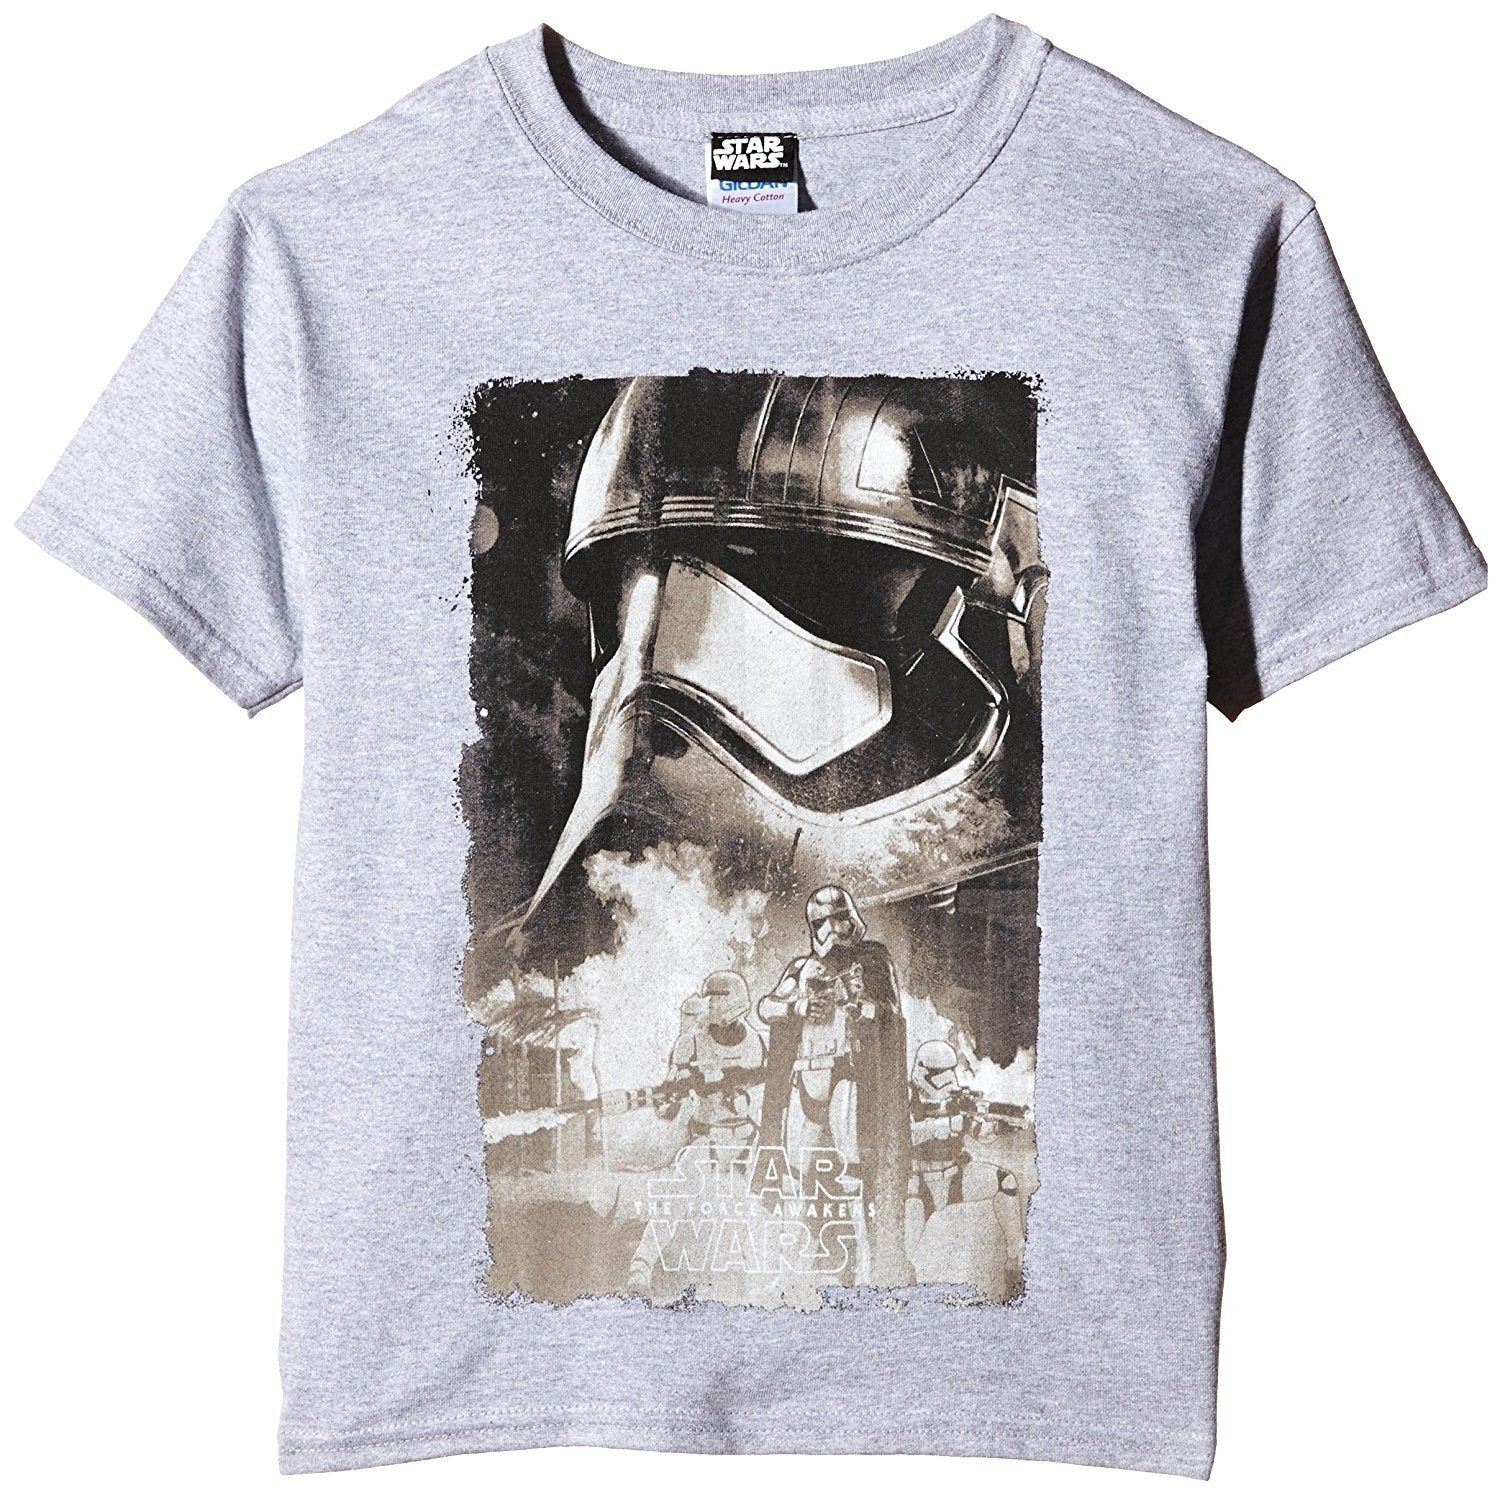 Star Wars Boys' VII Captain Phasma T-Shirt - Stockpoint Apparel Outlet